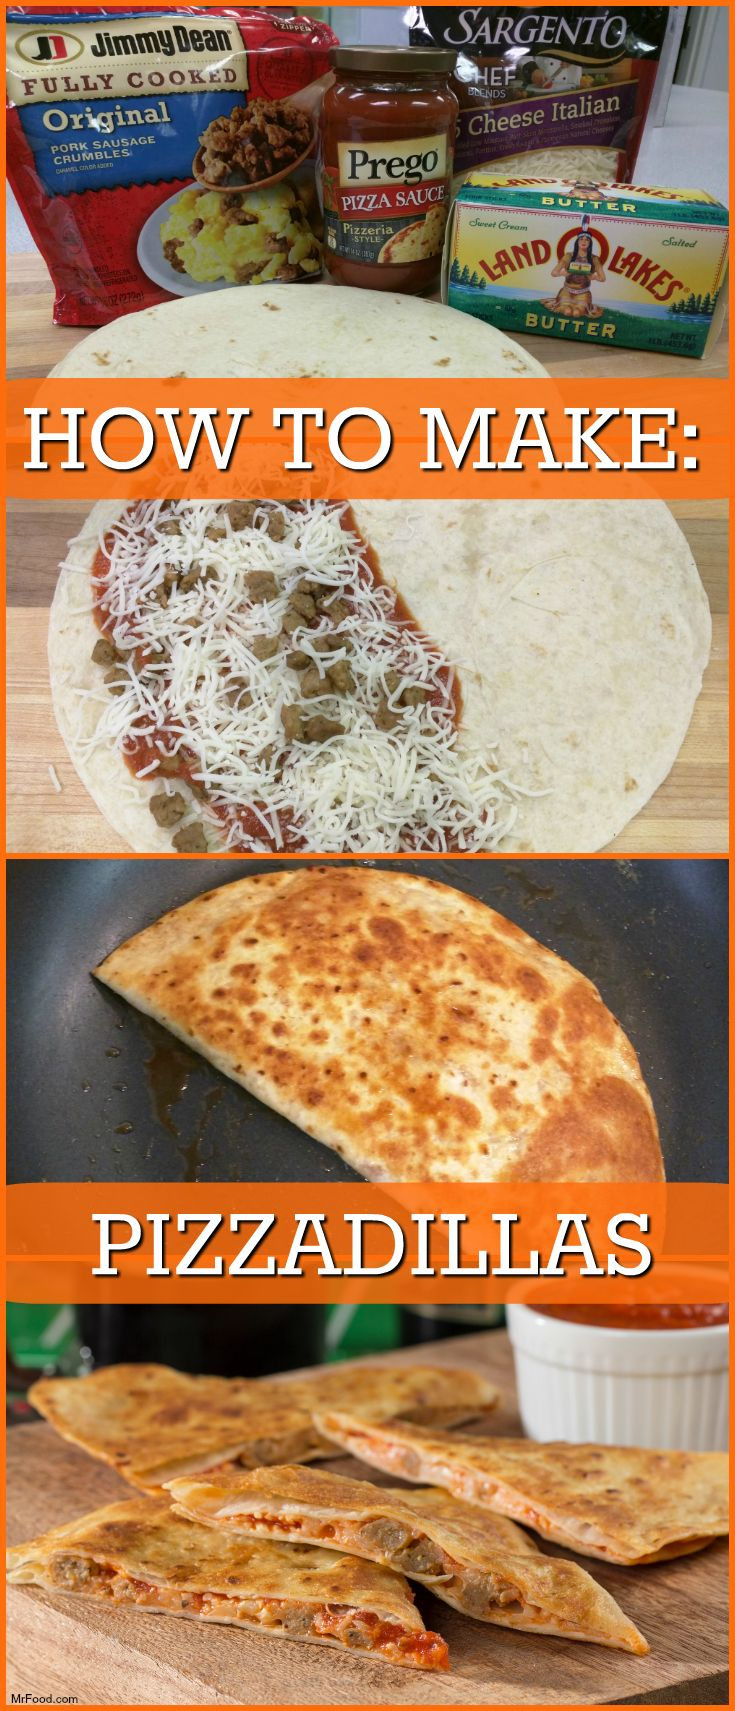 Step-by-step instructions on how to make pizza-style quesadillas for your game day party!